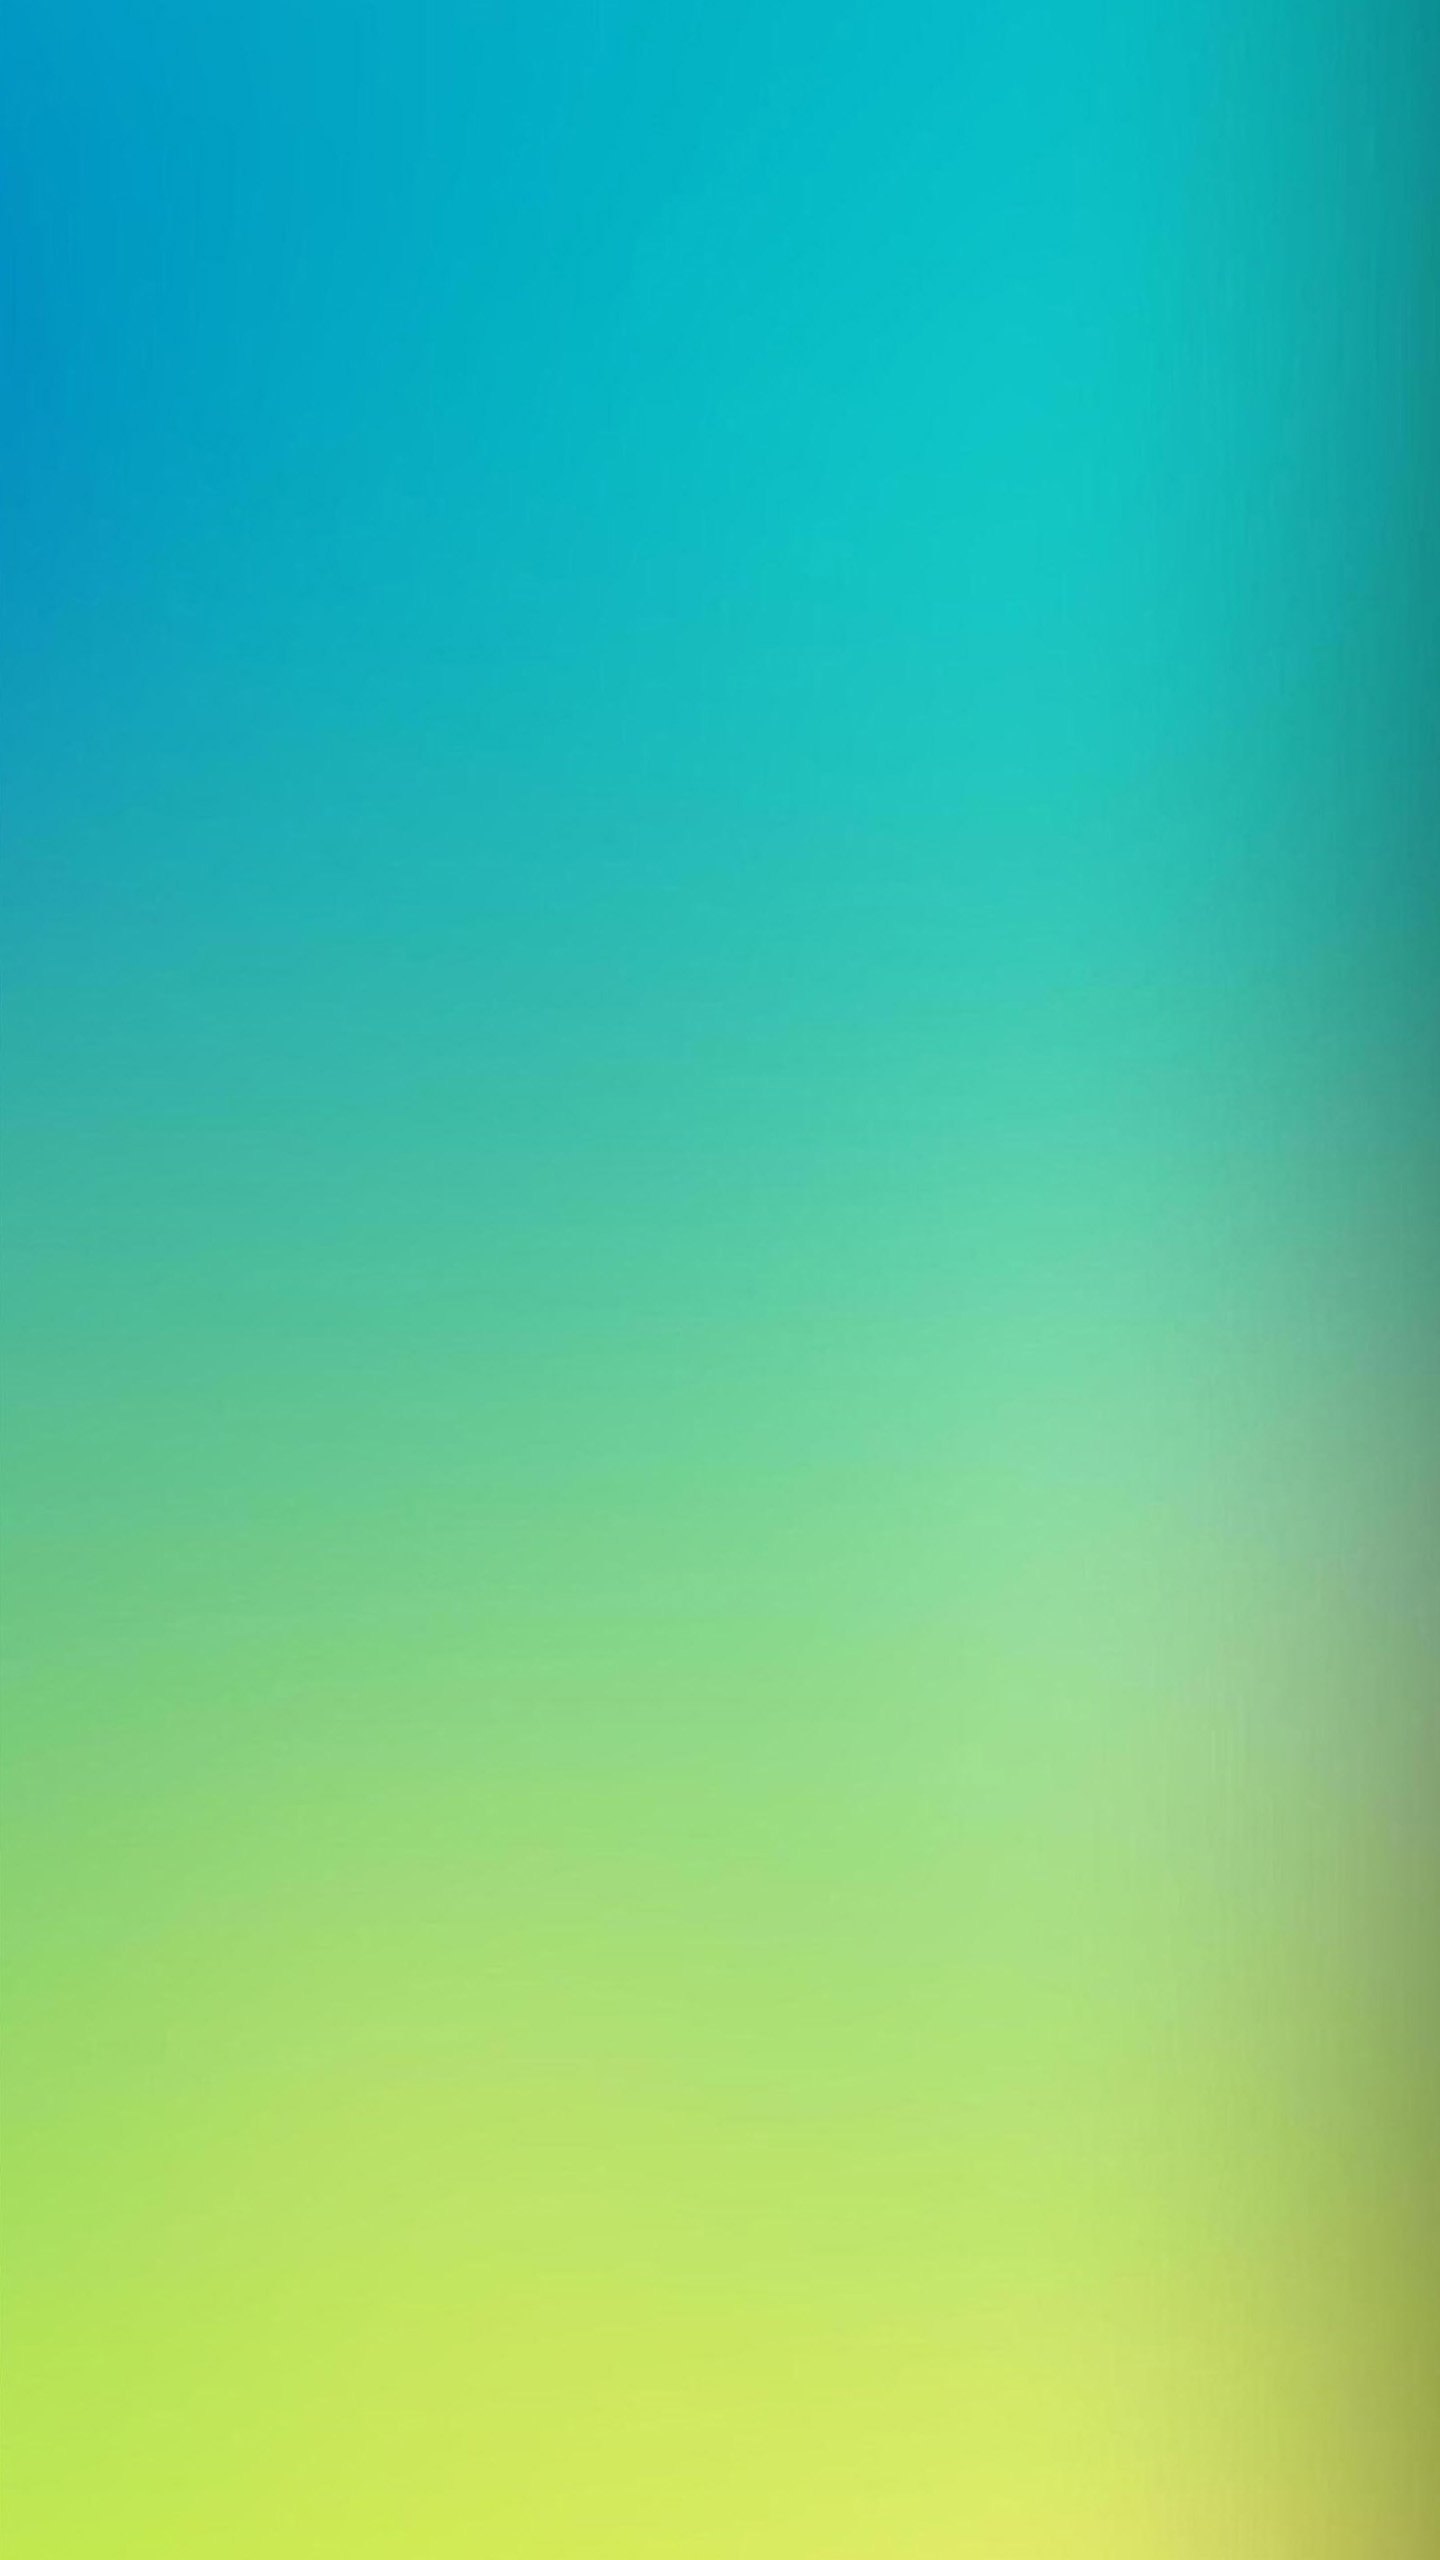 Free Download Gradient Background 16 Galaxy Note 4